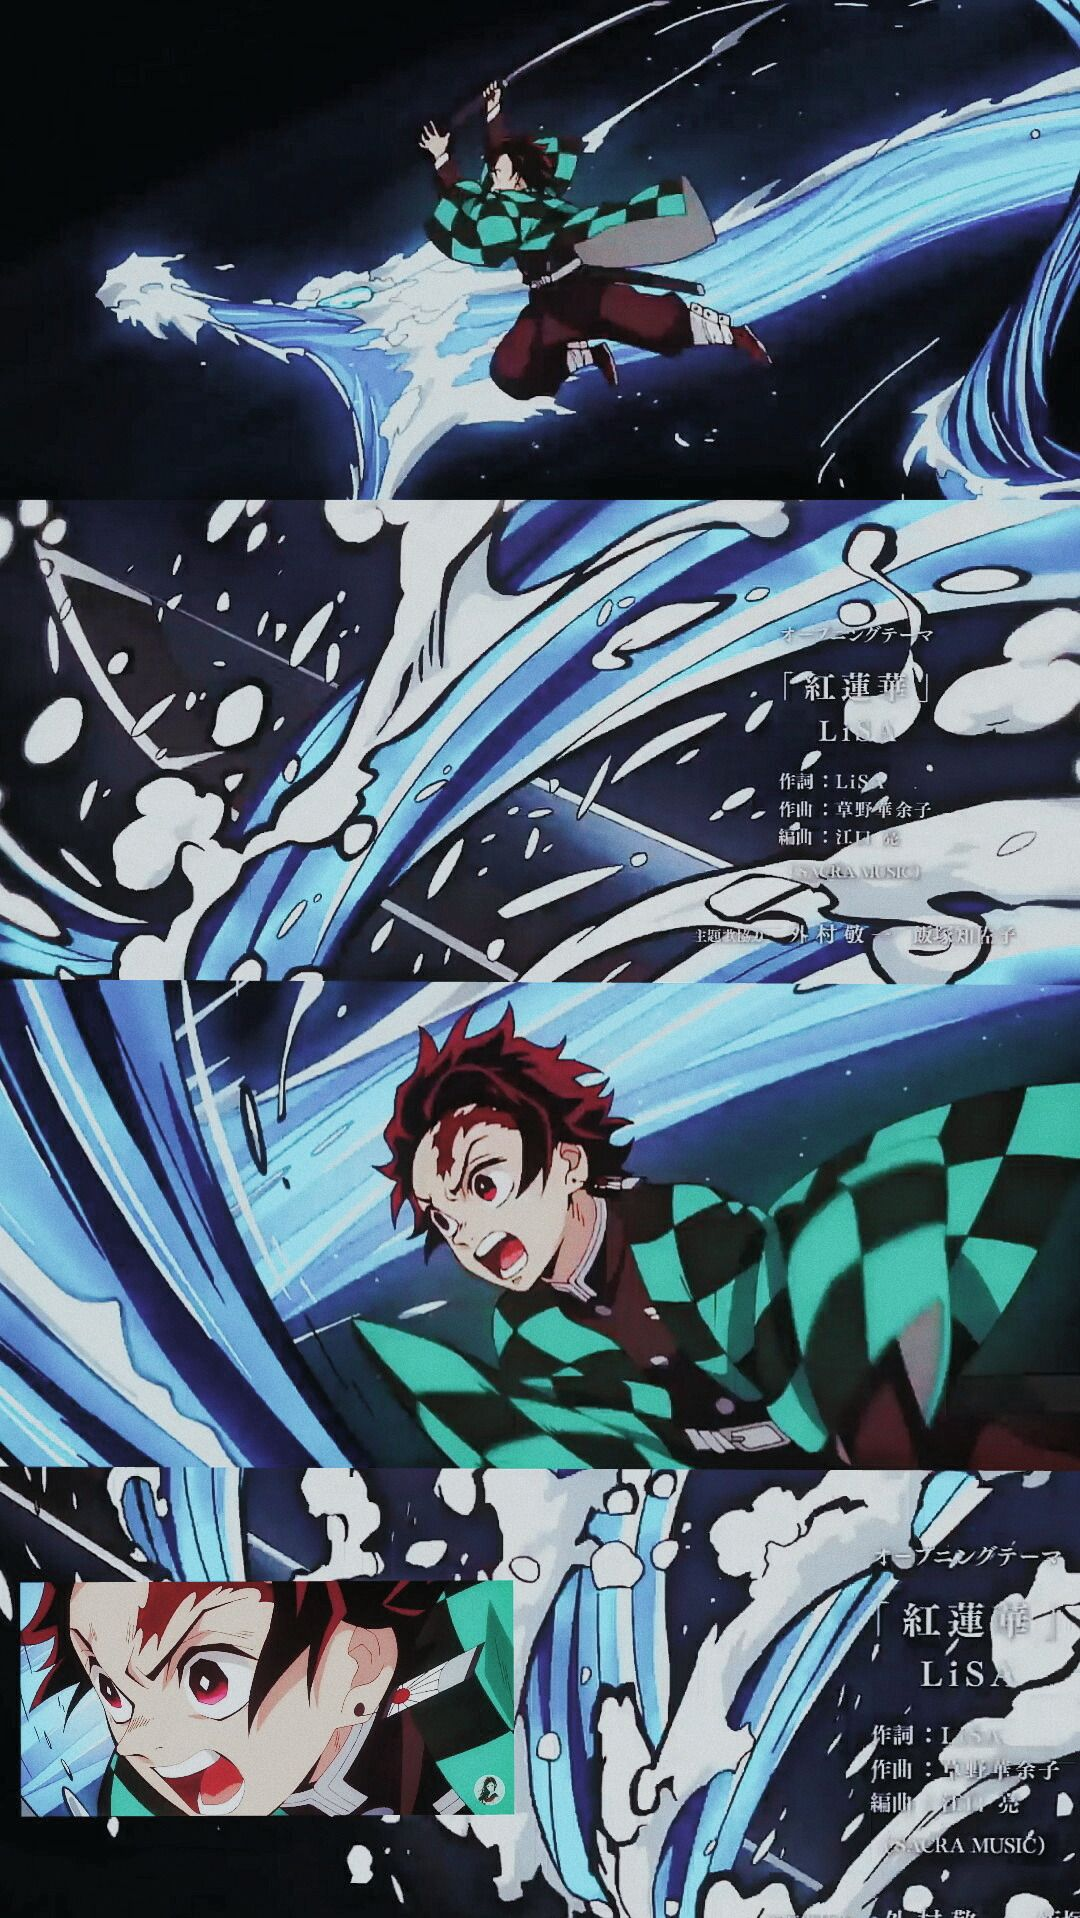 Lockscreen / Wallpaper from Kimetsu No Yaiba (Demon Slayer